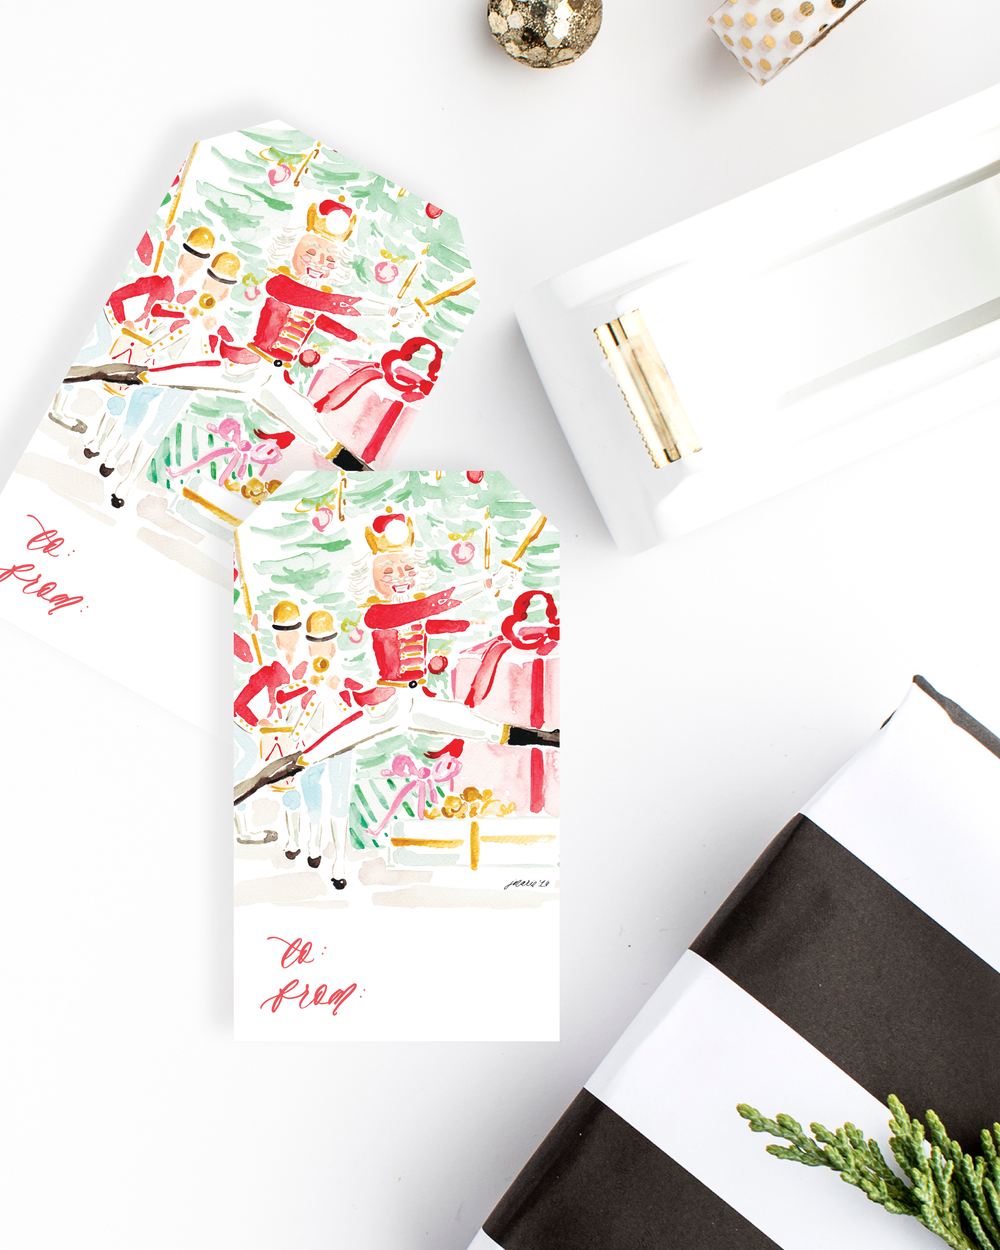 Copy of The Nutcracker Watercolor Gift Tags Variety Set Illustrated by Simply Jessica Marie | Top Tips for Using Styled Stock Photos for Shop Owners | SC Stockshop